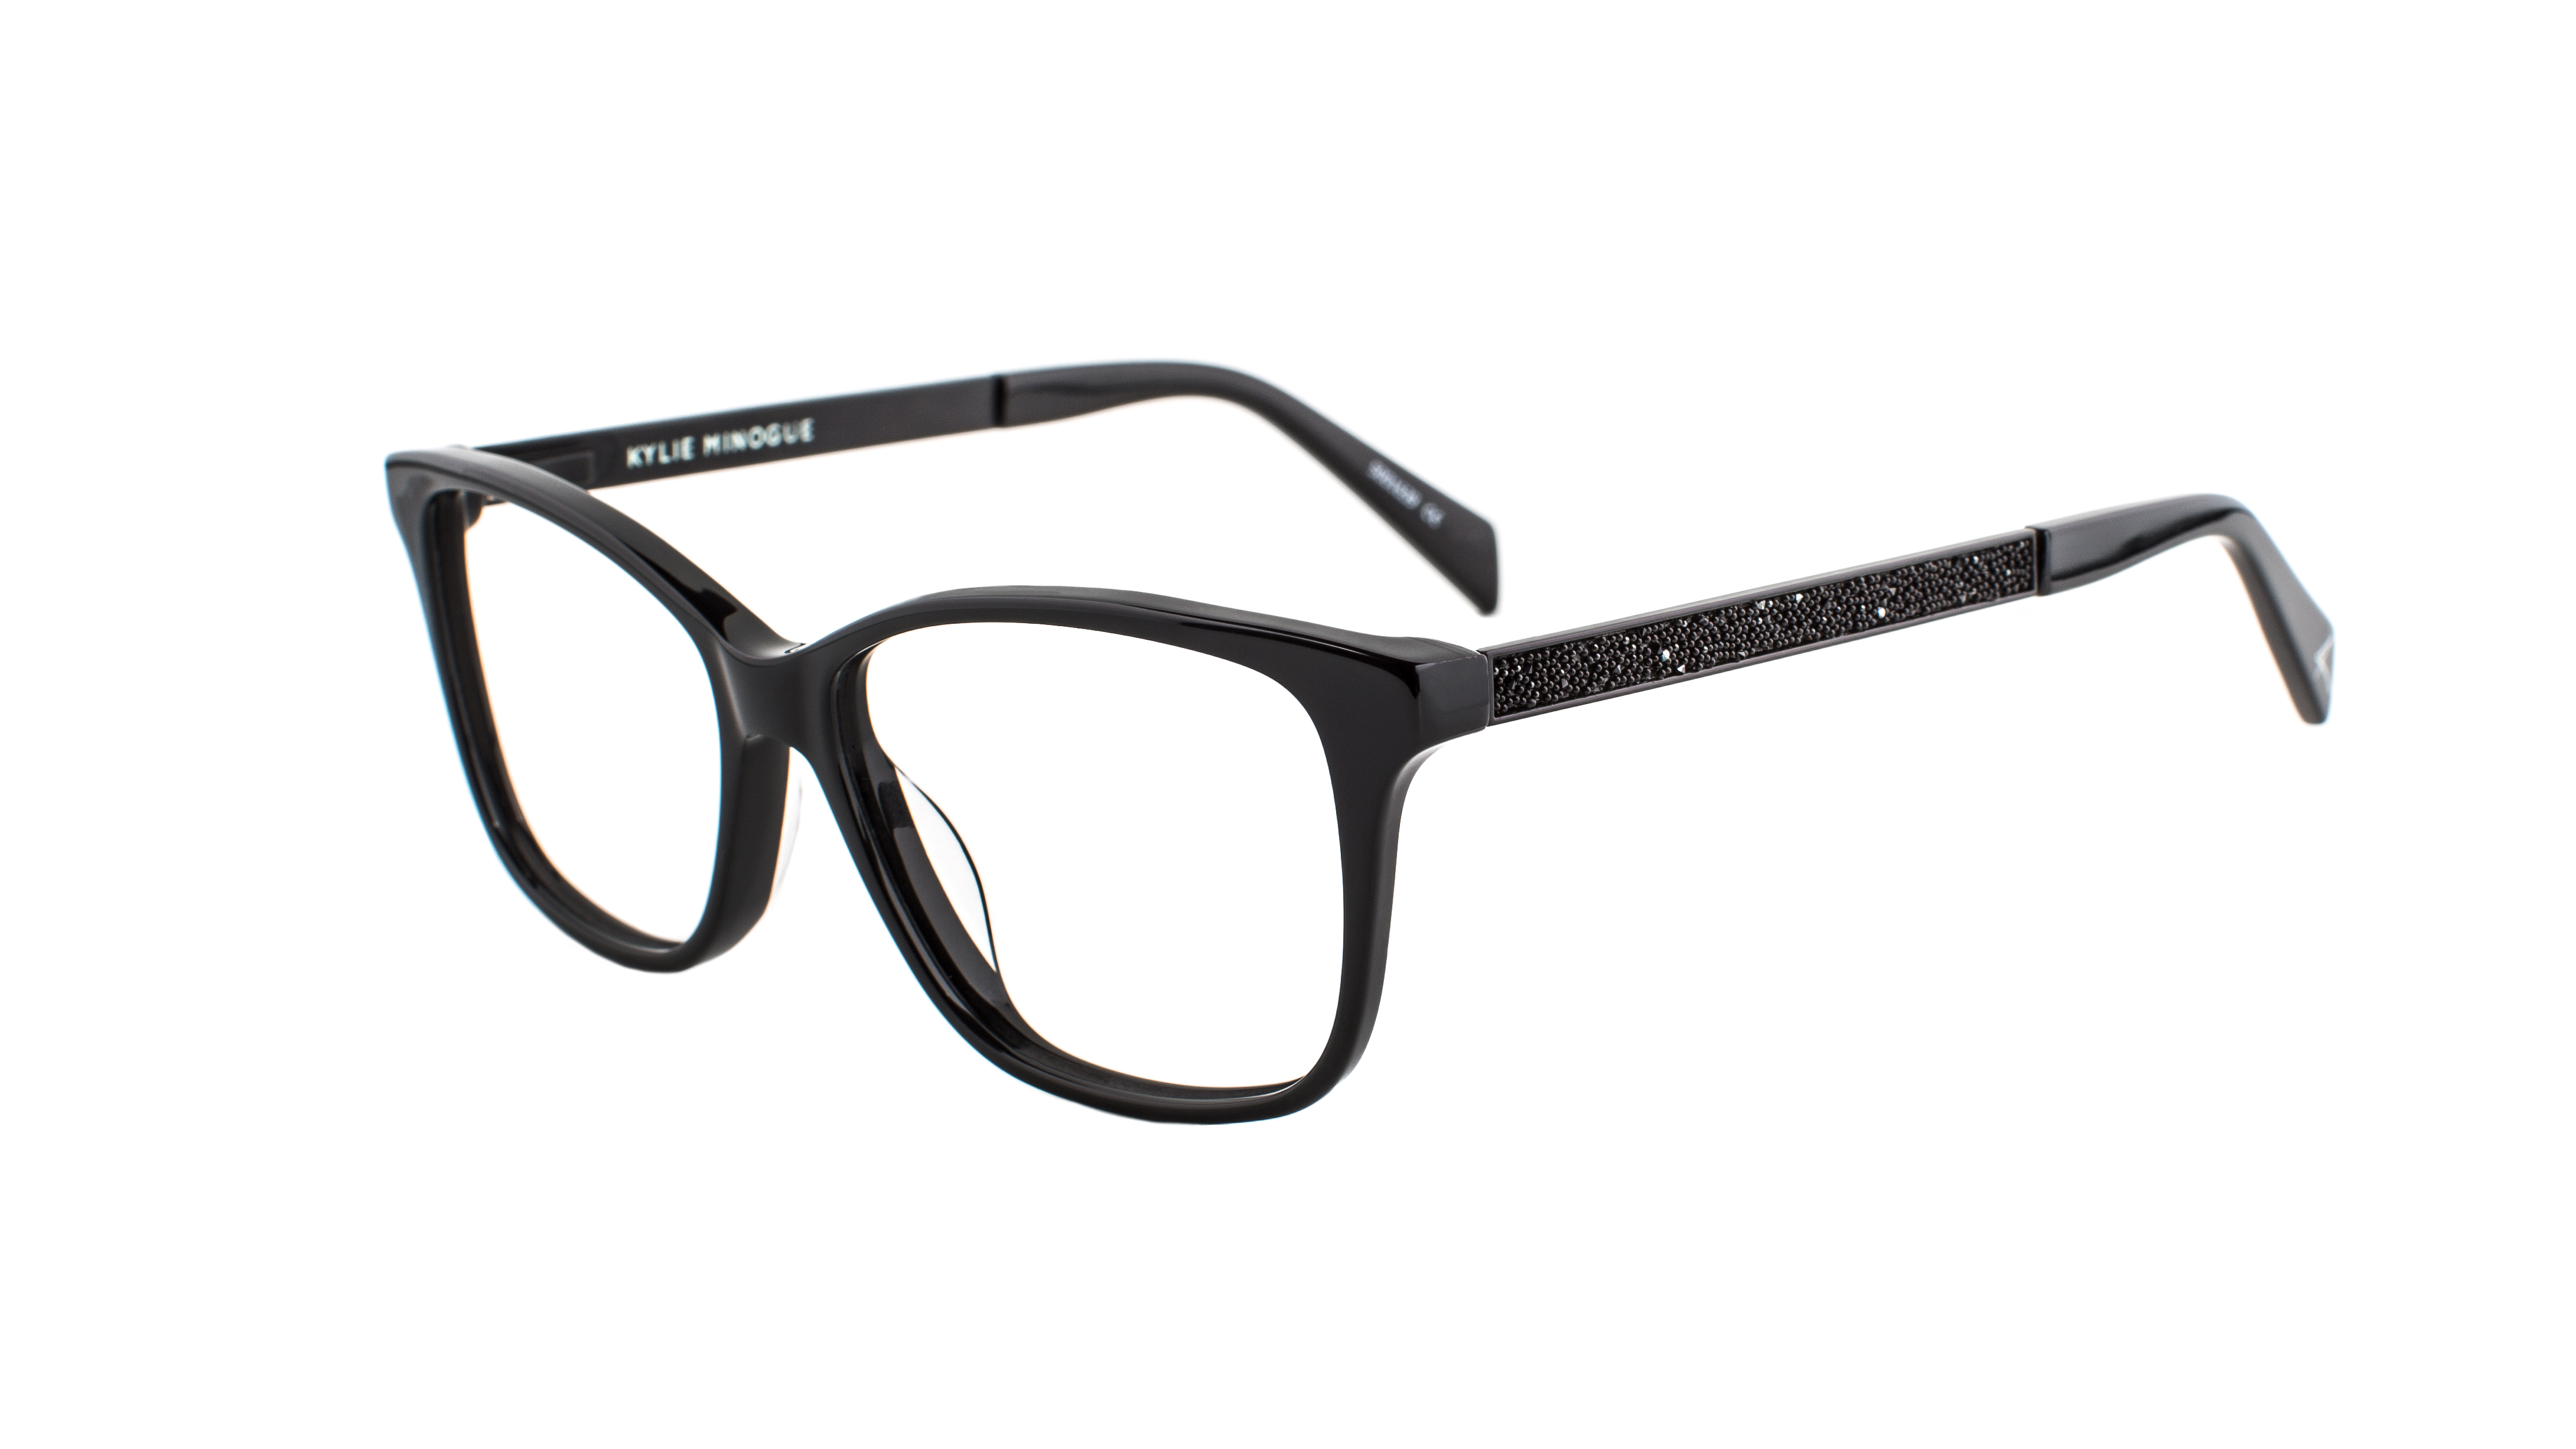 Kylie Minogue Eyewear_Kylie 09_SKU 30520226_RRP 2 pairs from $299 (2)